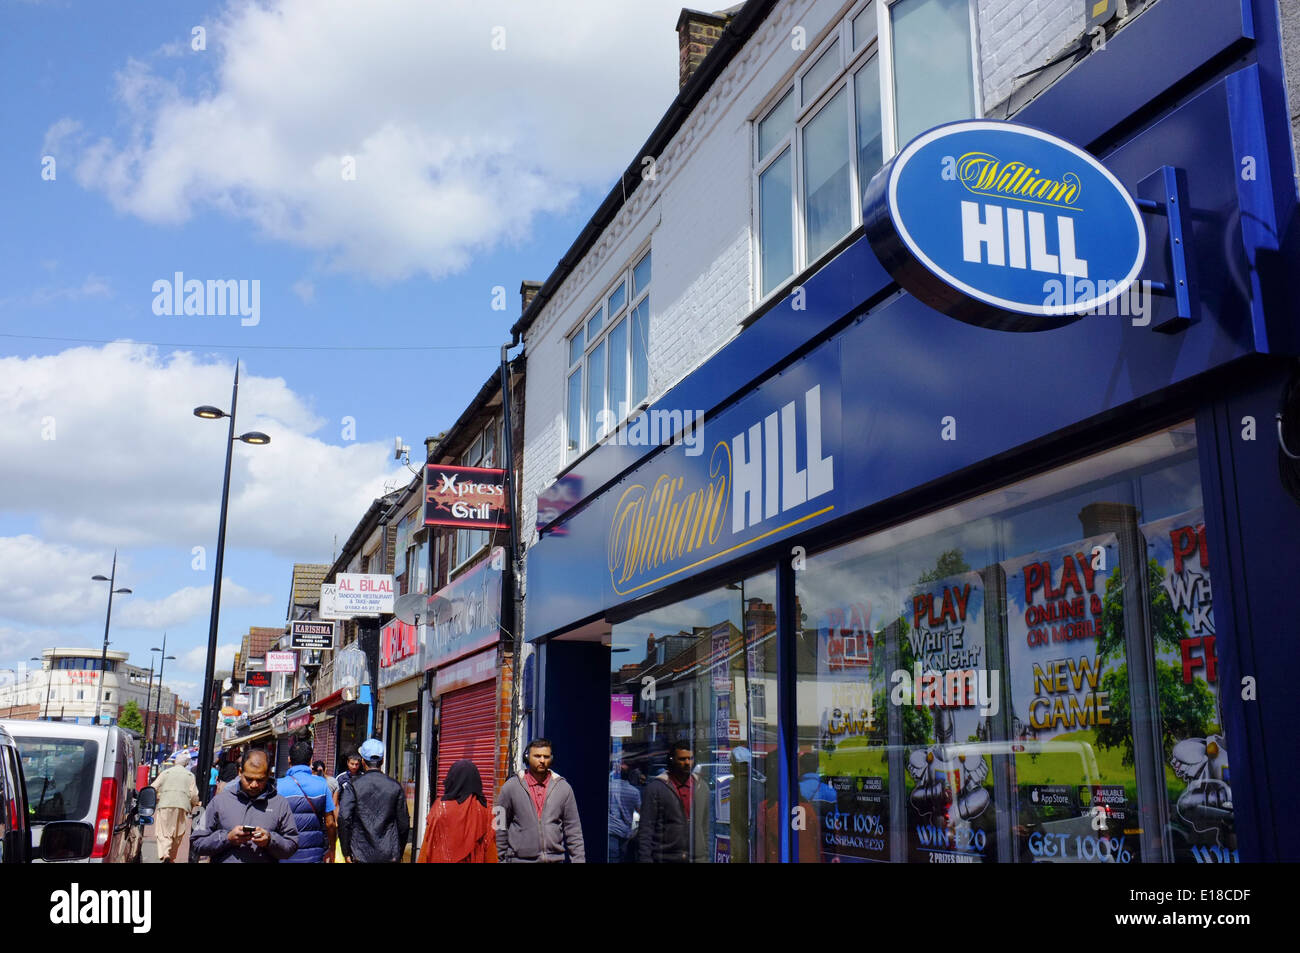 William hill gloucester opening hours gambling best quotes